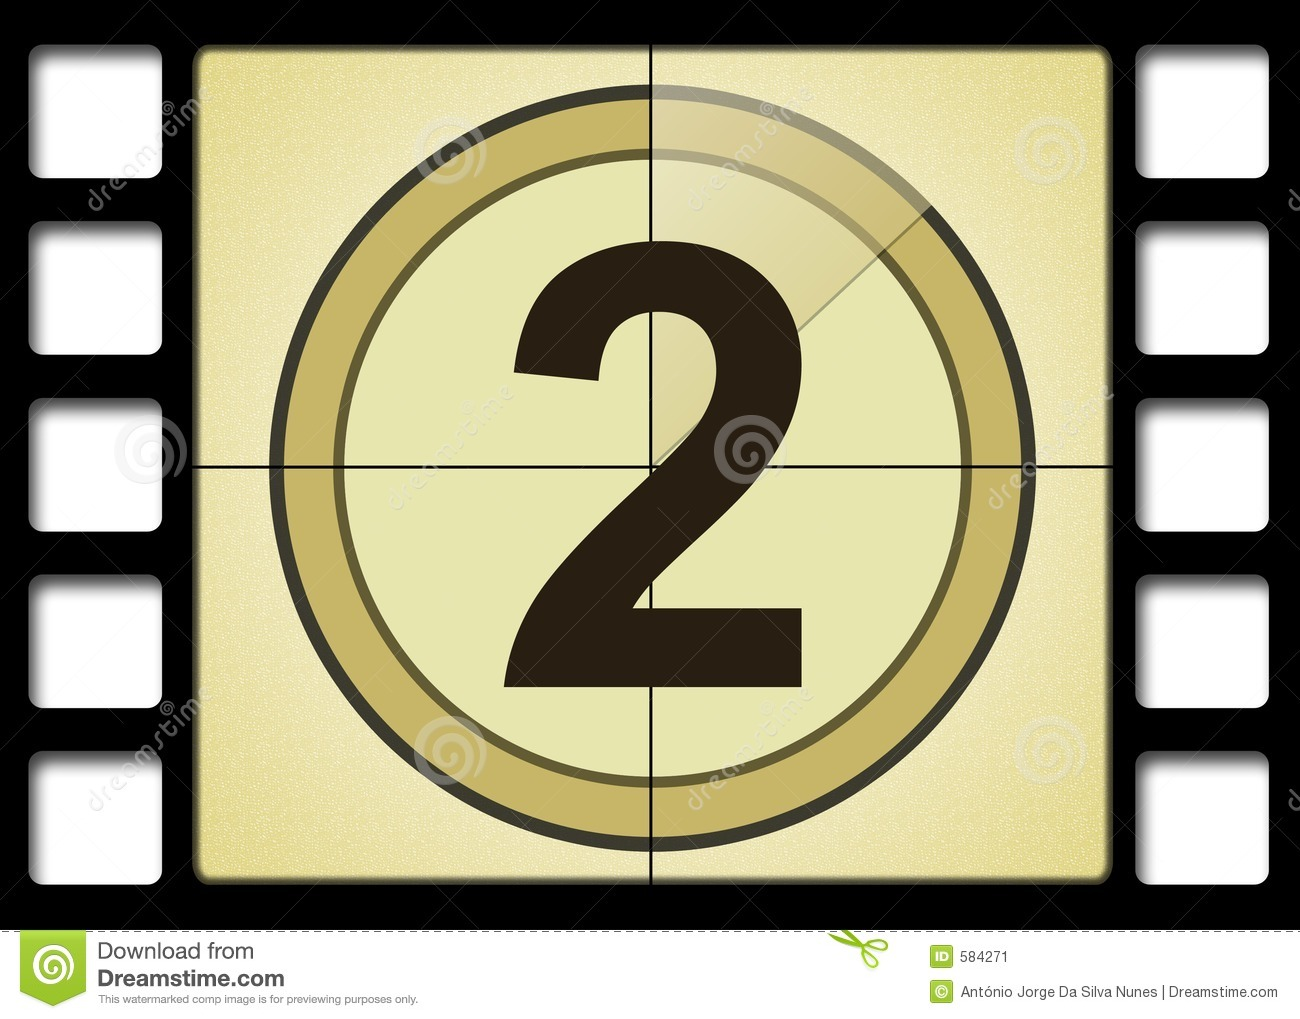 Movie countdown clip art graphic black and white Film Countdown Stock Image - Image: 584271 graphic black and white